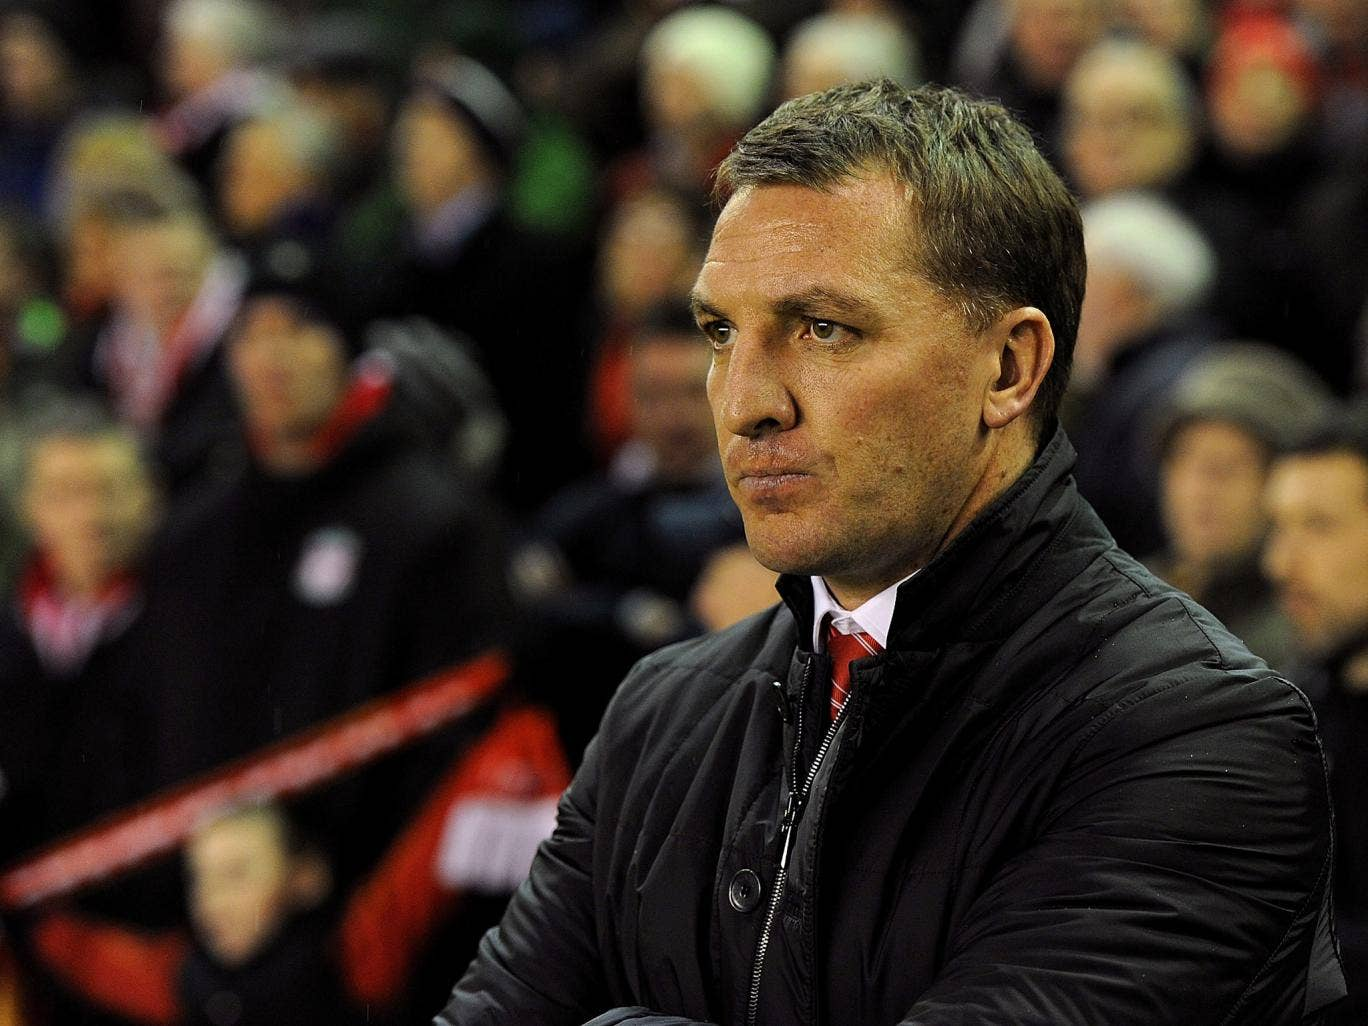 Liverpool manager Brendan Rodgers watches his side in the Merseyside derby